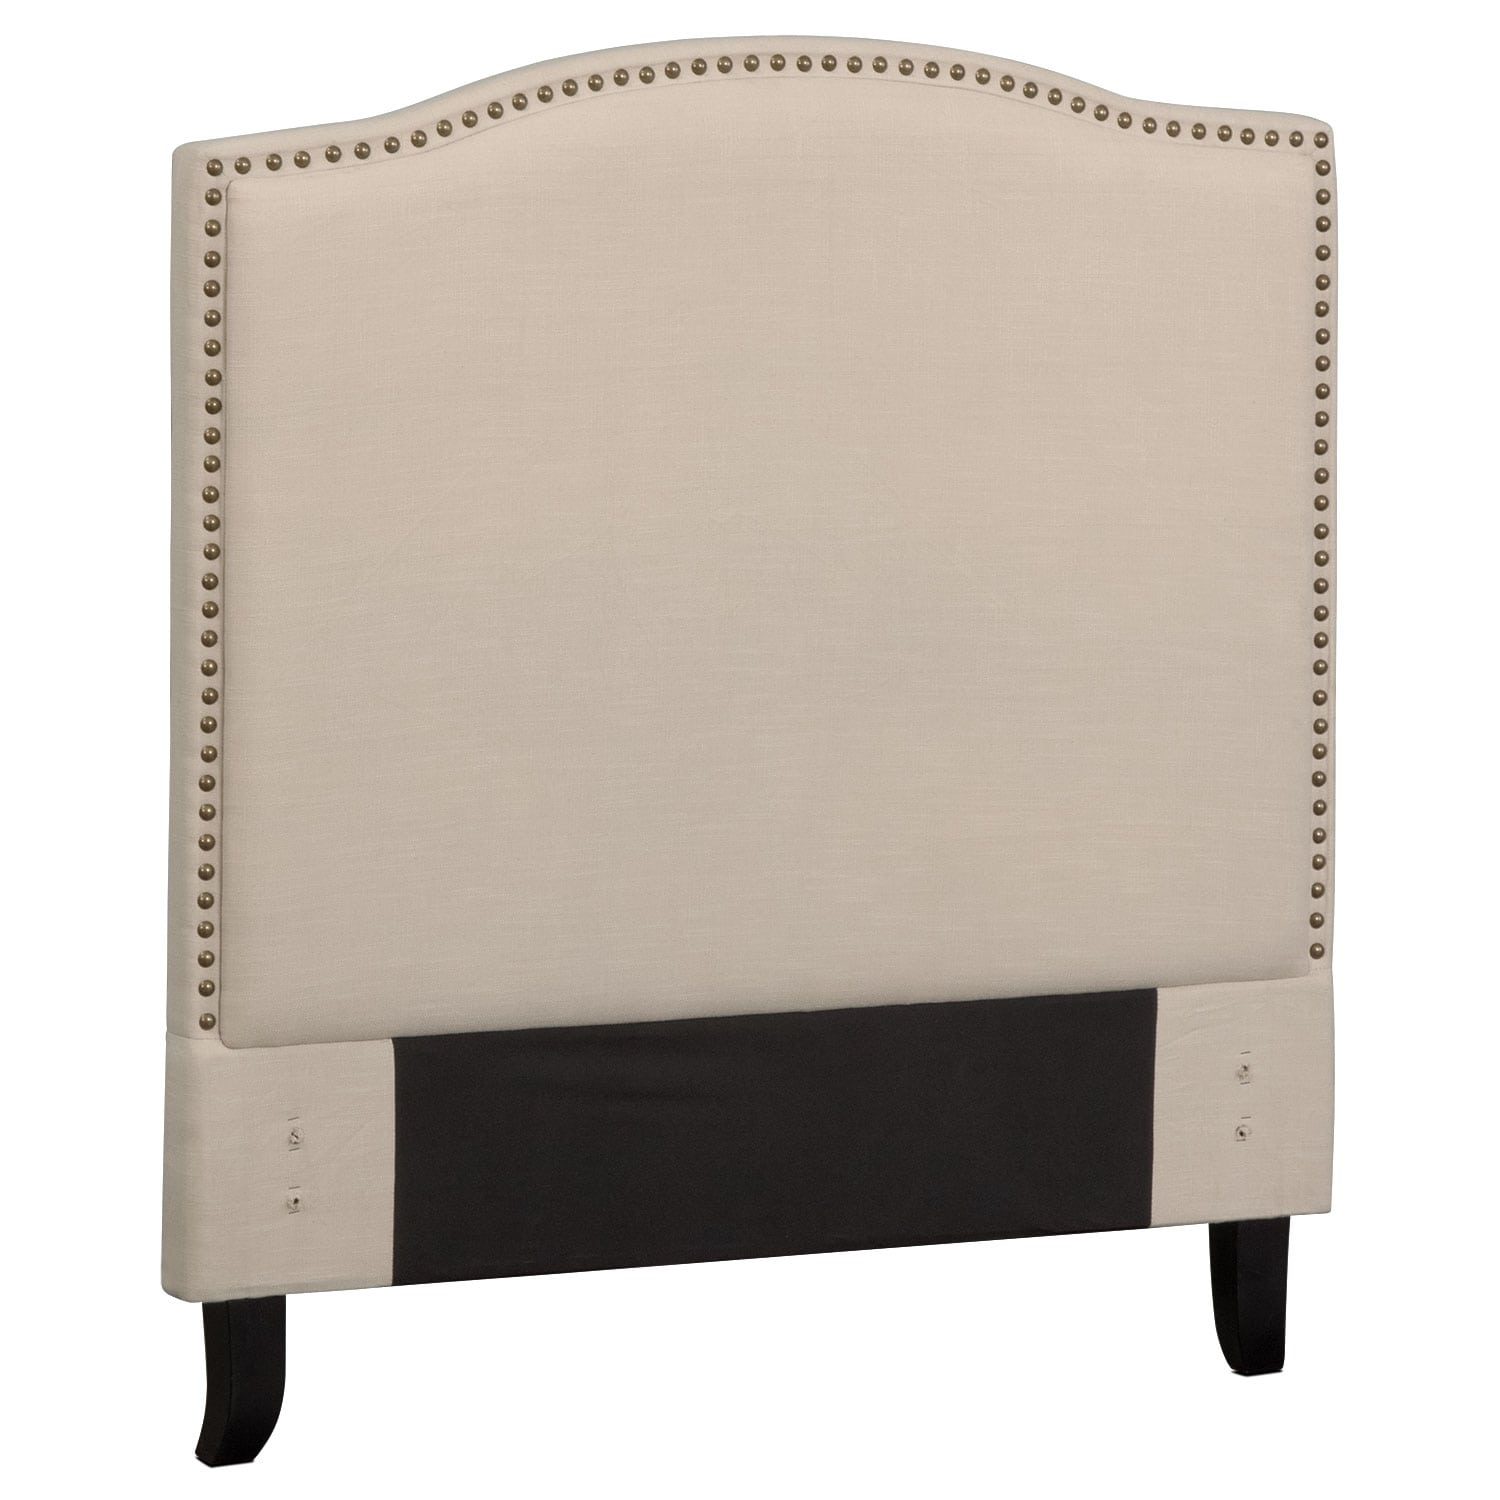 Aubrey Full Upholstered Headboard - Sand